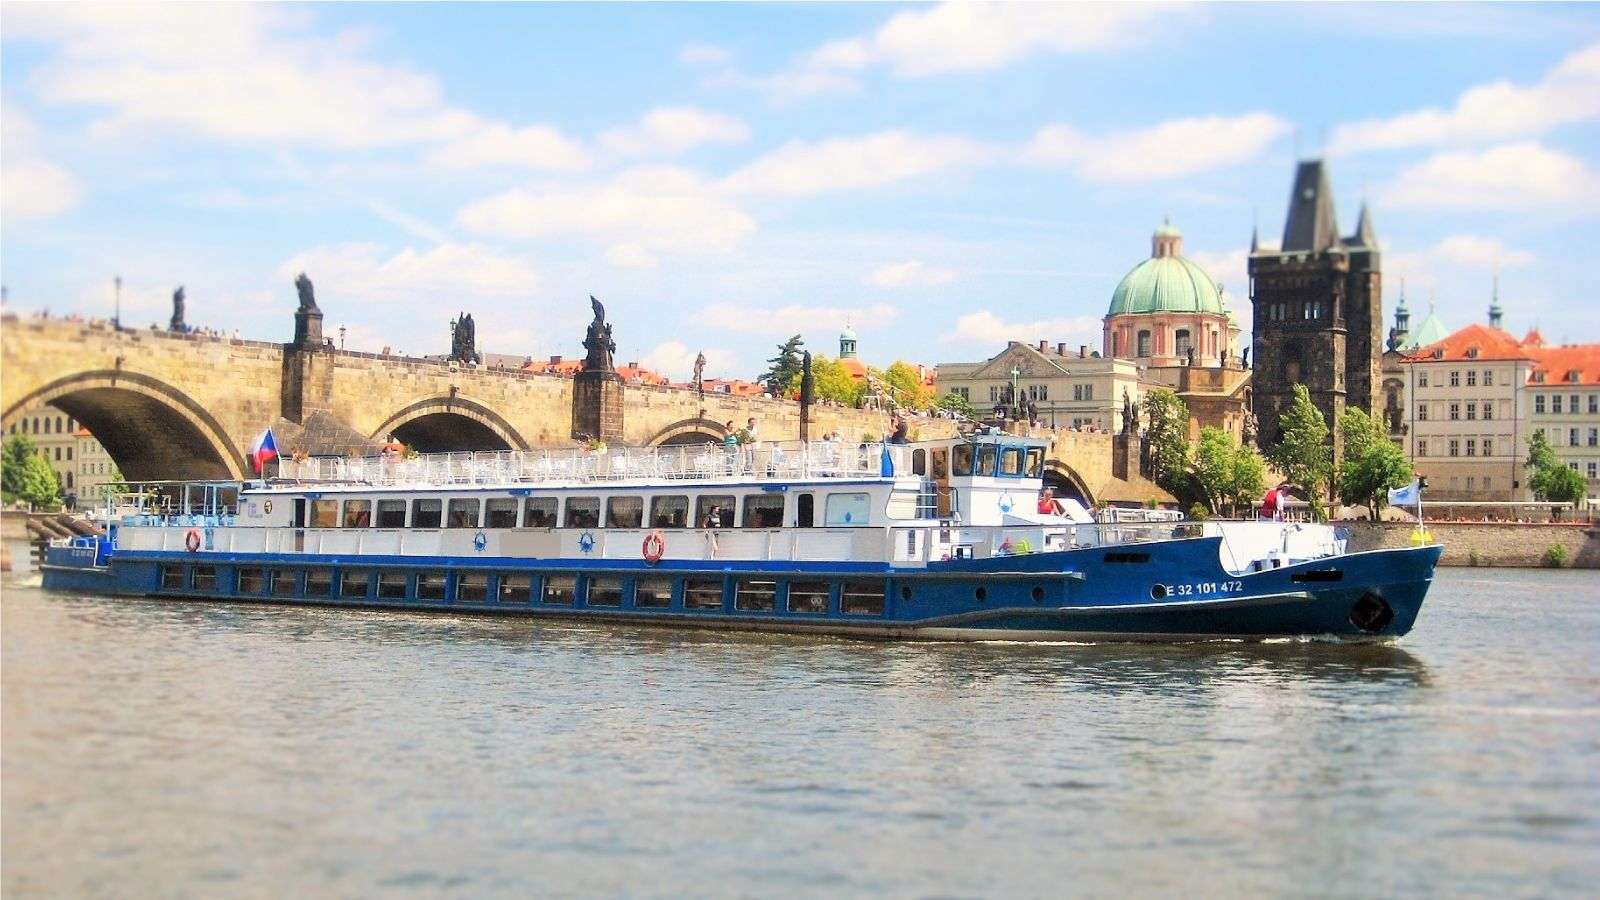 Cruise boat on the river in Prague